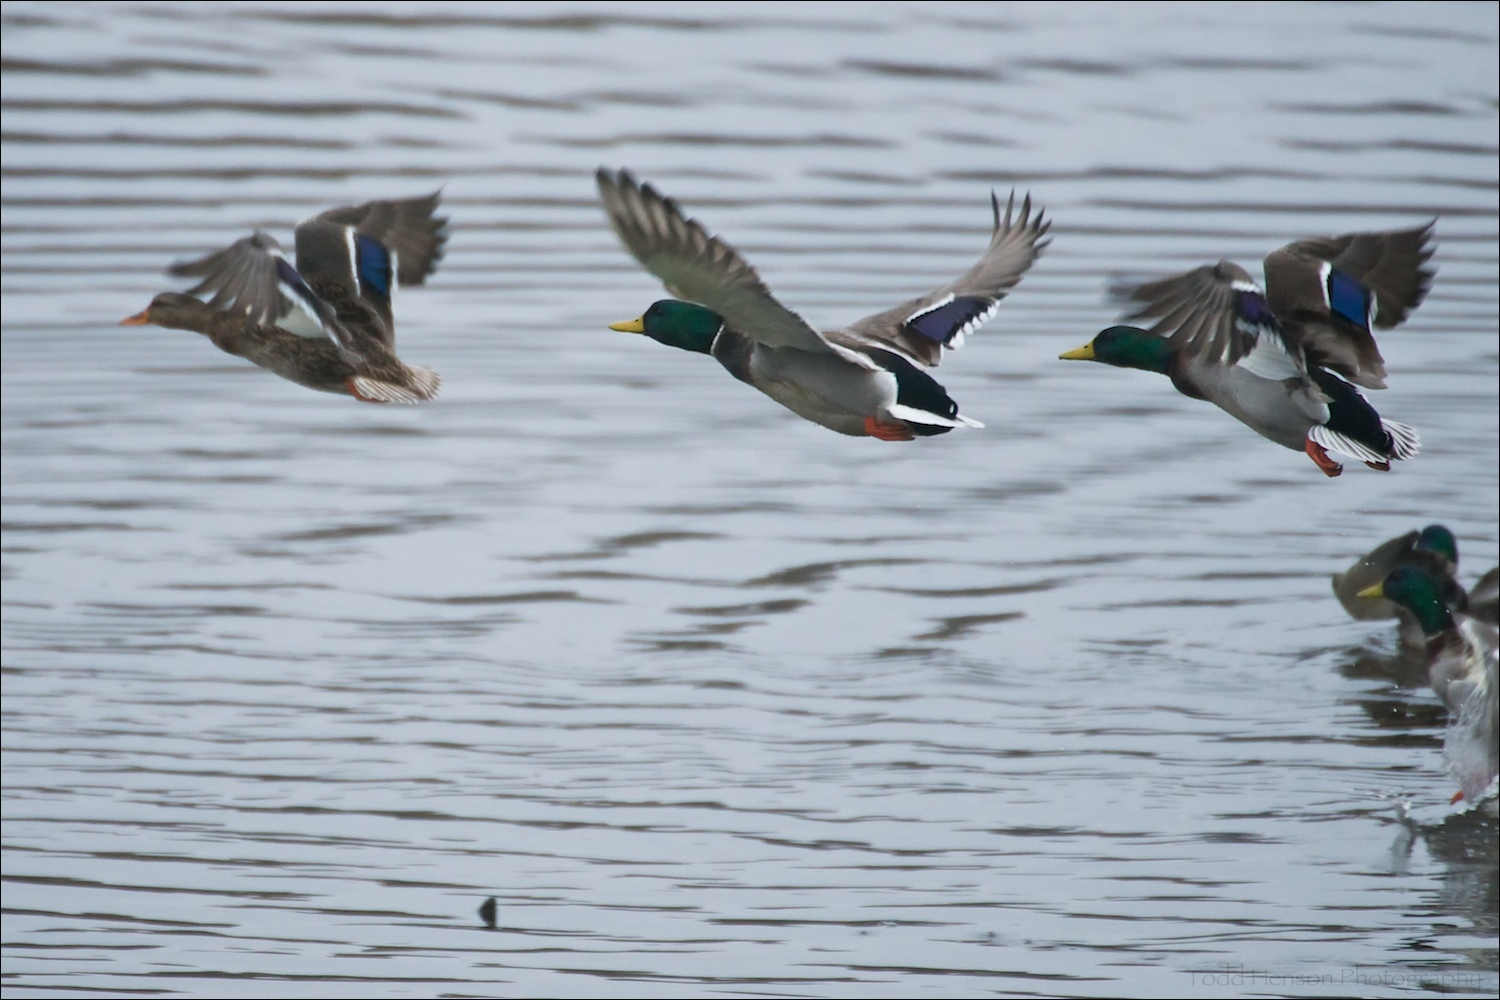 A group of Male Mallard taking flight after a female. The blue patch and black/white stripes on the wings are more easily visible when they are in flight.